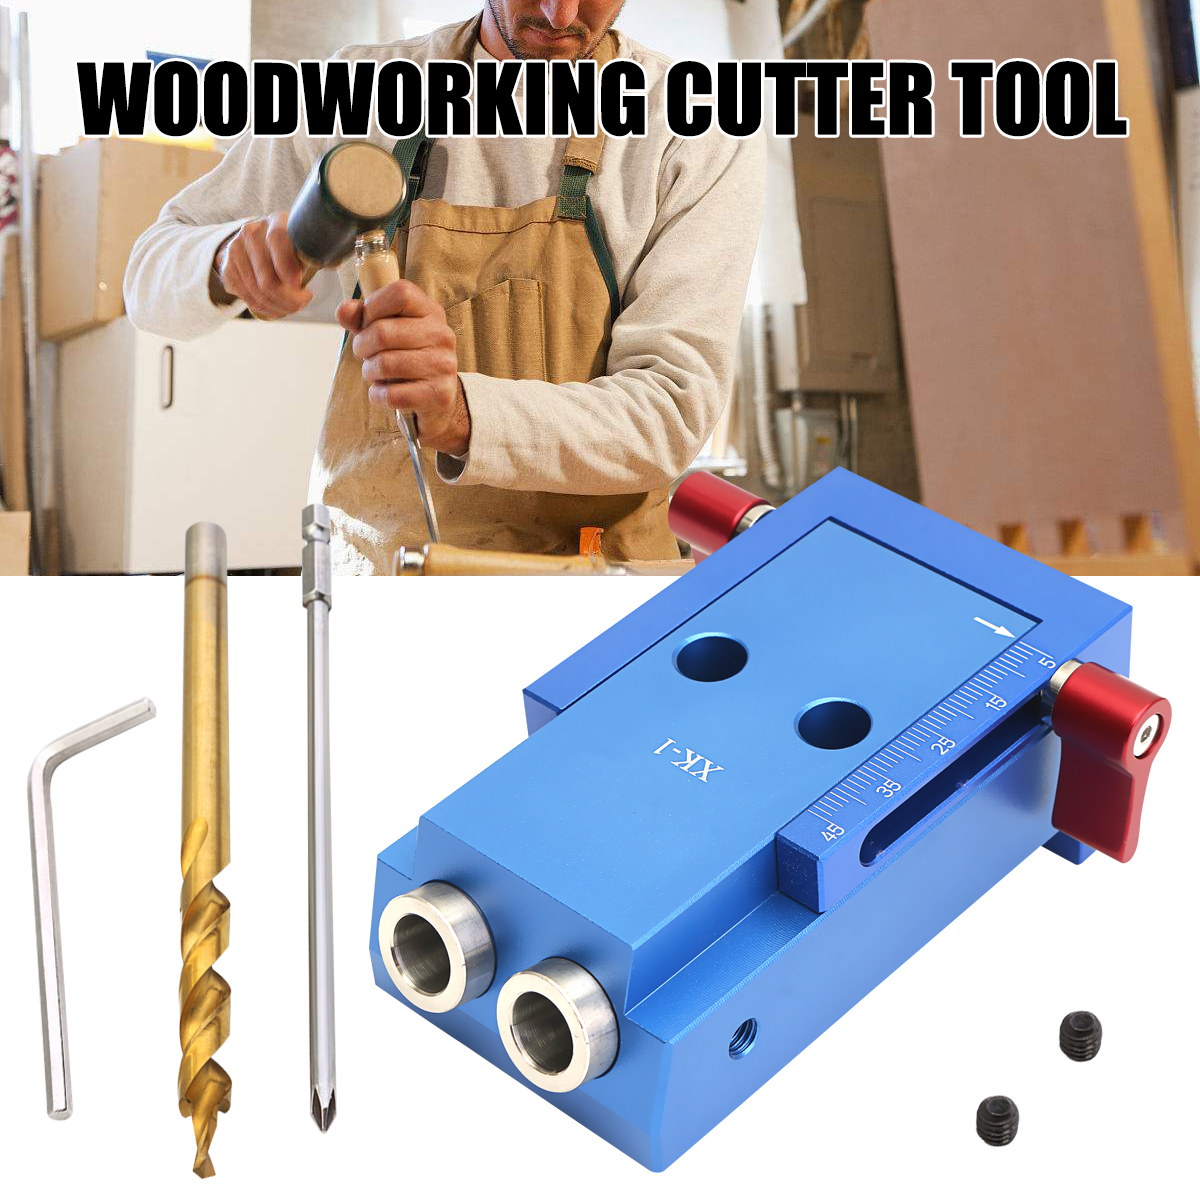 Aluminum Alloy Pocke t Hole Jig Kit With Step Drill Bit Woodworking Cutter Tool 9.5mm Collar Manual Wood Drilling Hole Saw best selling aluminum alloy wood cutting 60mm diameter hole saw tool